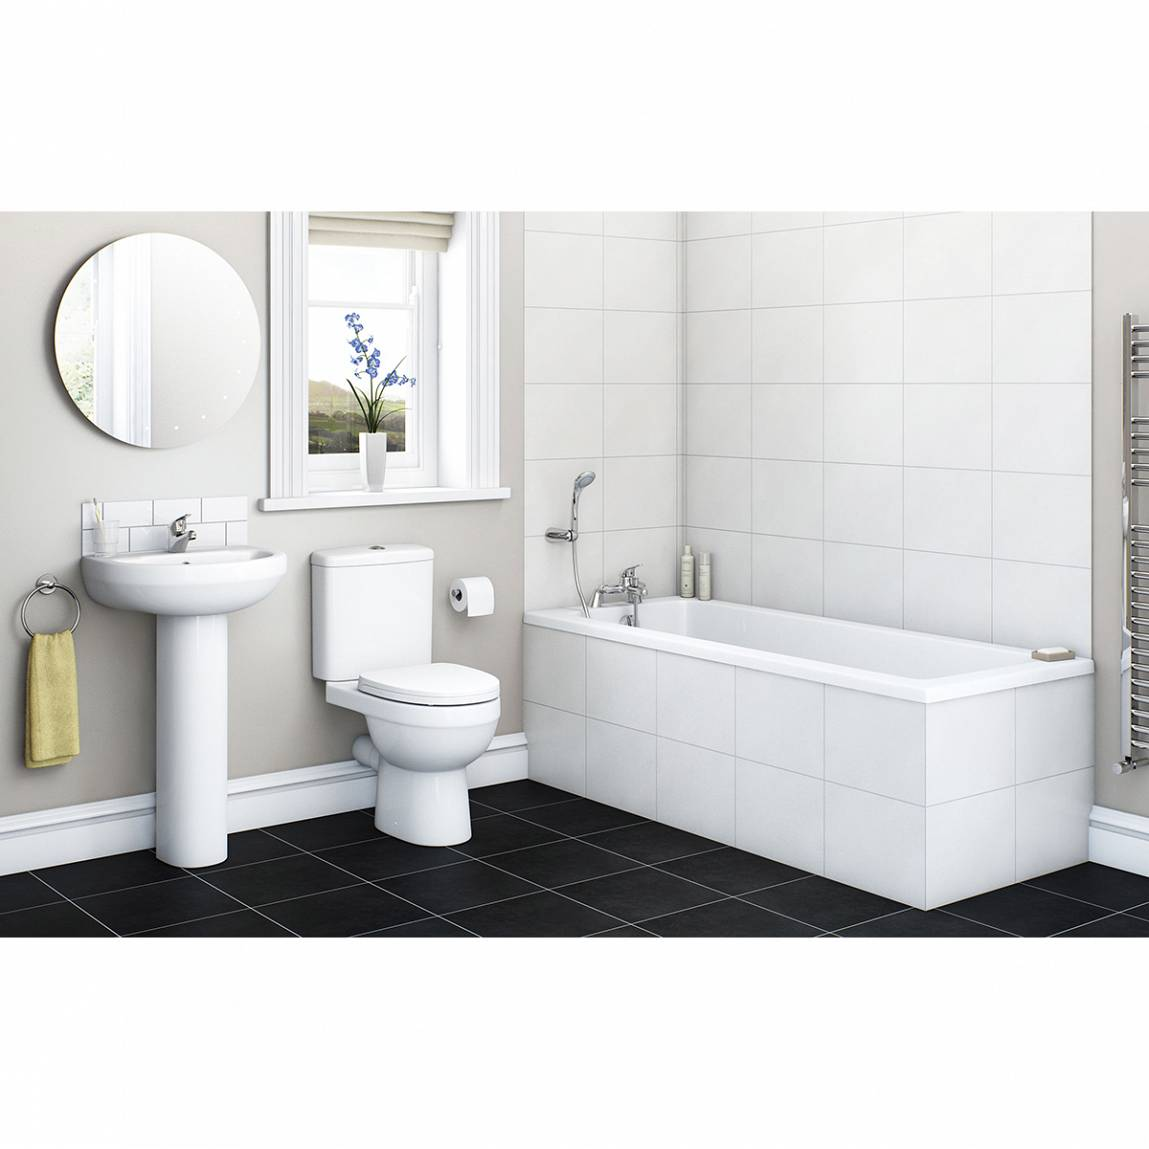 Image of Energy Family Bathroom Suite